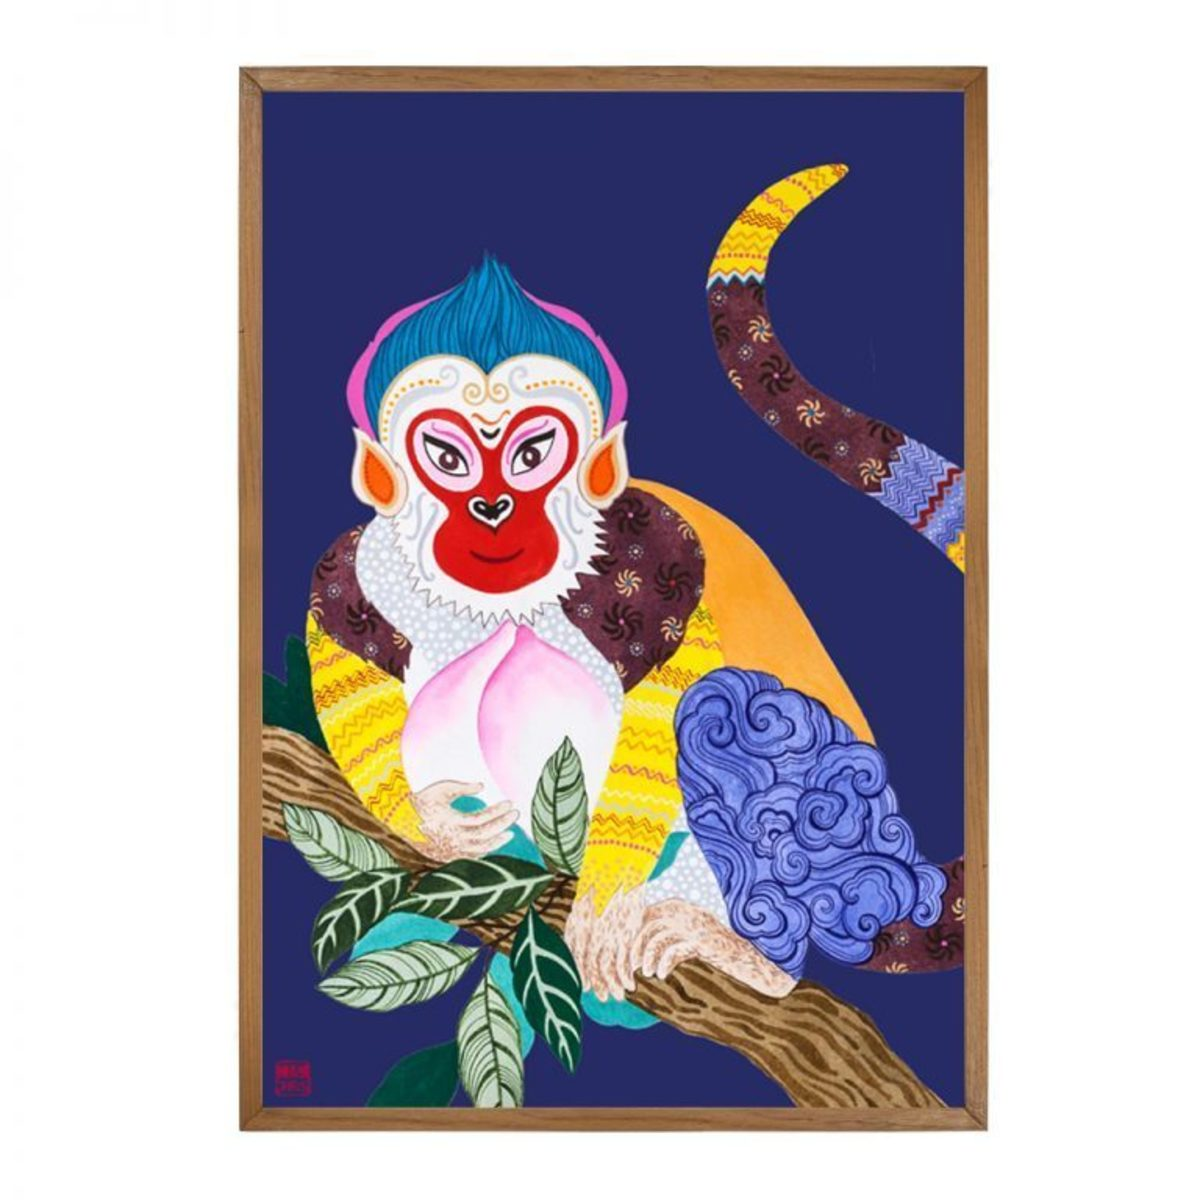 Monkey - Limited Edition Print of 25 (Unframed)